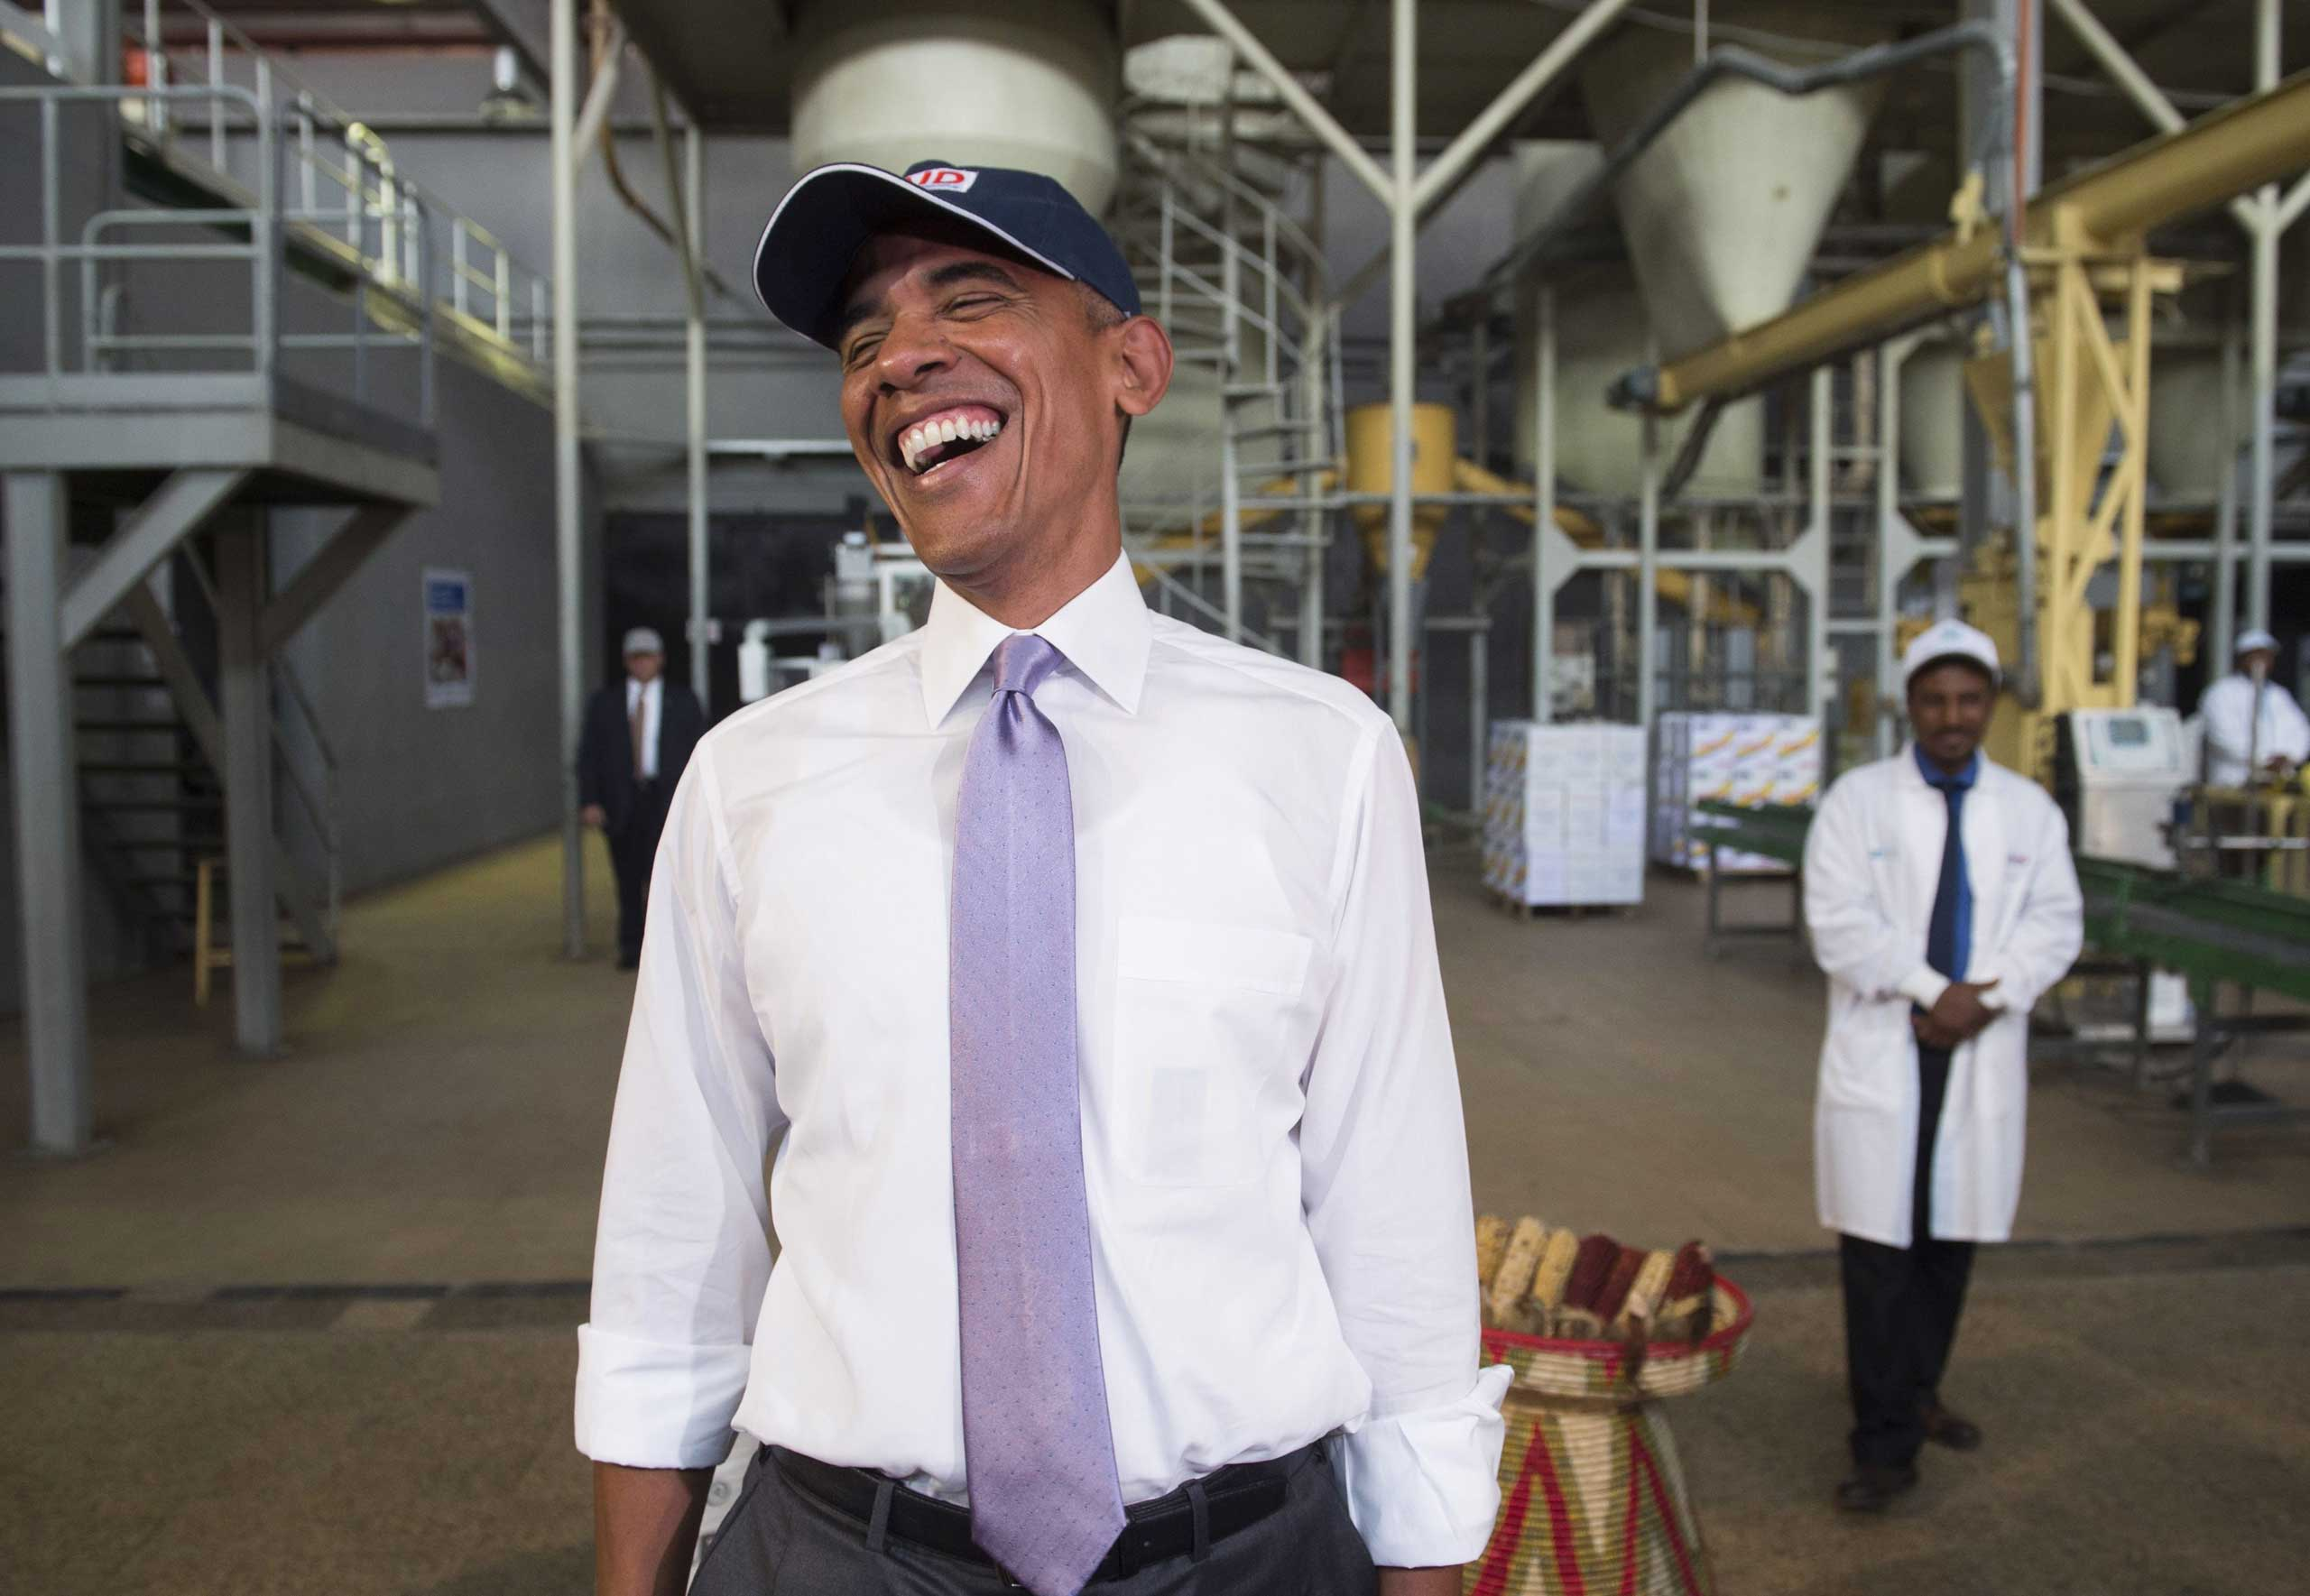 President Barack Obama laughs at the hair nets the members of the press have to wear during a tour of Faffa Food, in Addis Ababa on July 28, 2015.